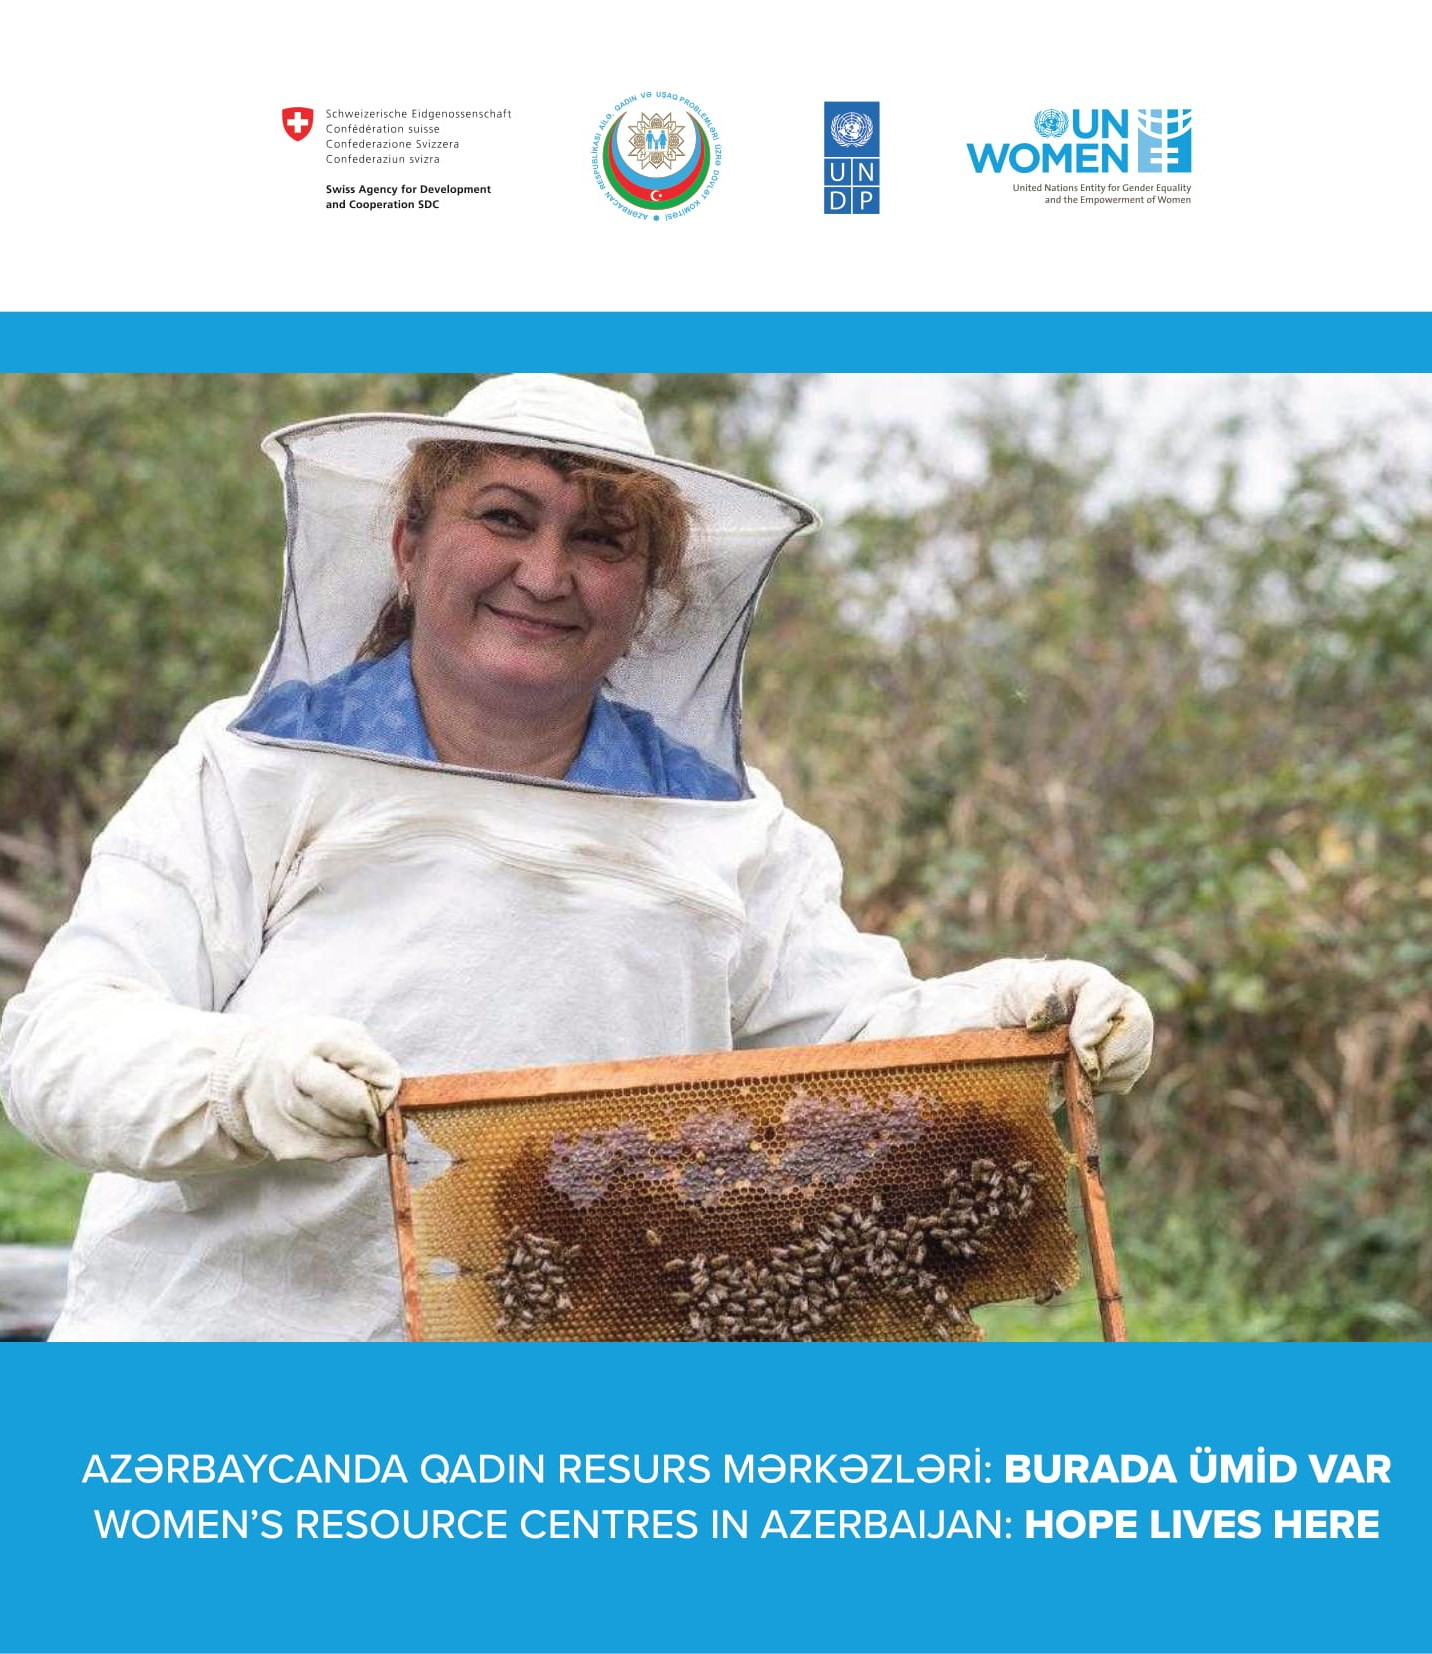 Women's Resource Centers at the forefront of women's economic empowerment in Azerbaijan